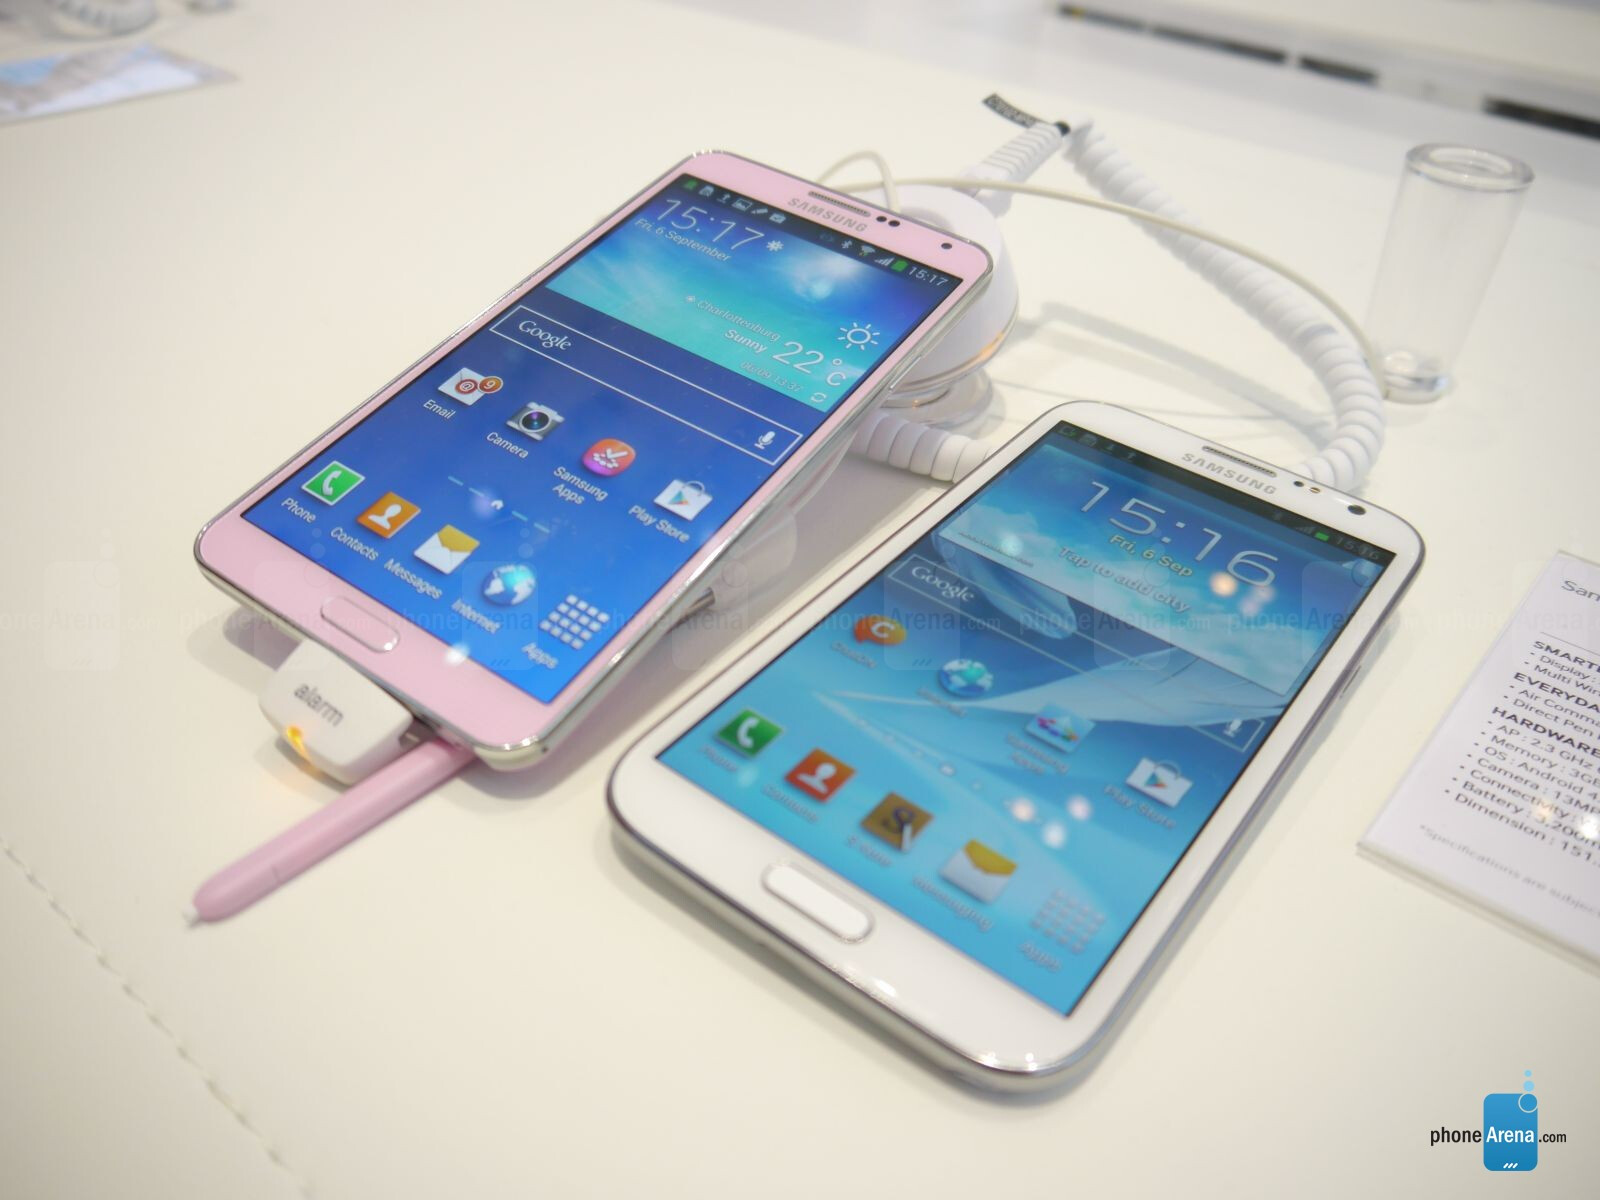 http://i-cdn.phonearena.com/images/articles/95305-image/samsung-galaxy-note-3-vs-note-2-2.JPG.jpg